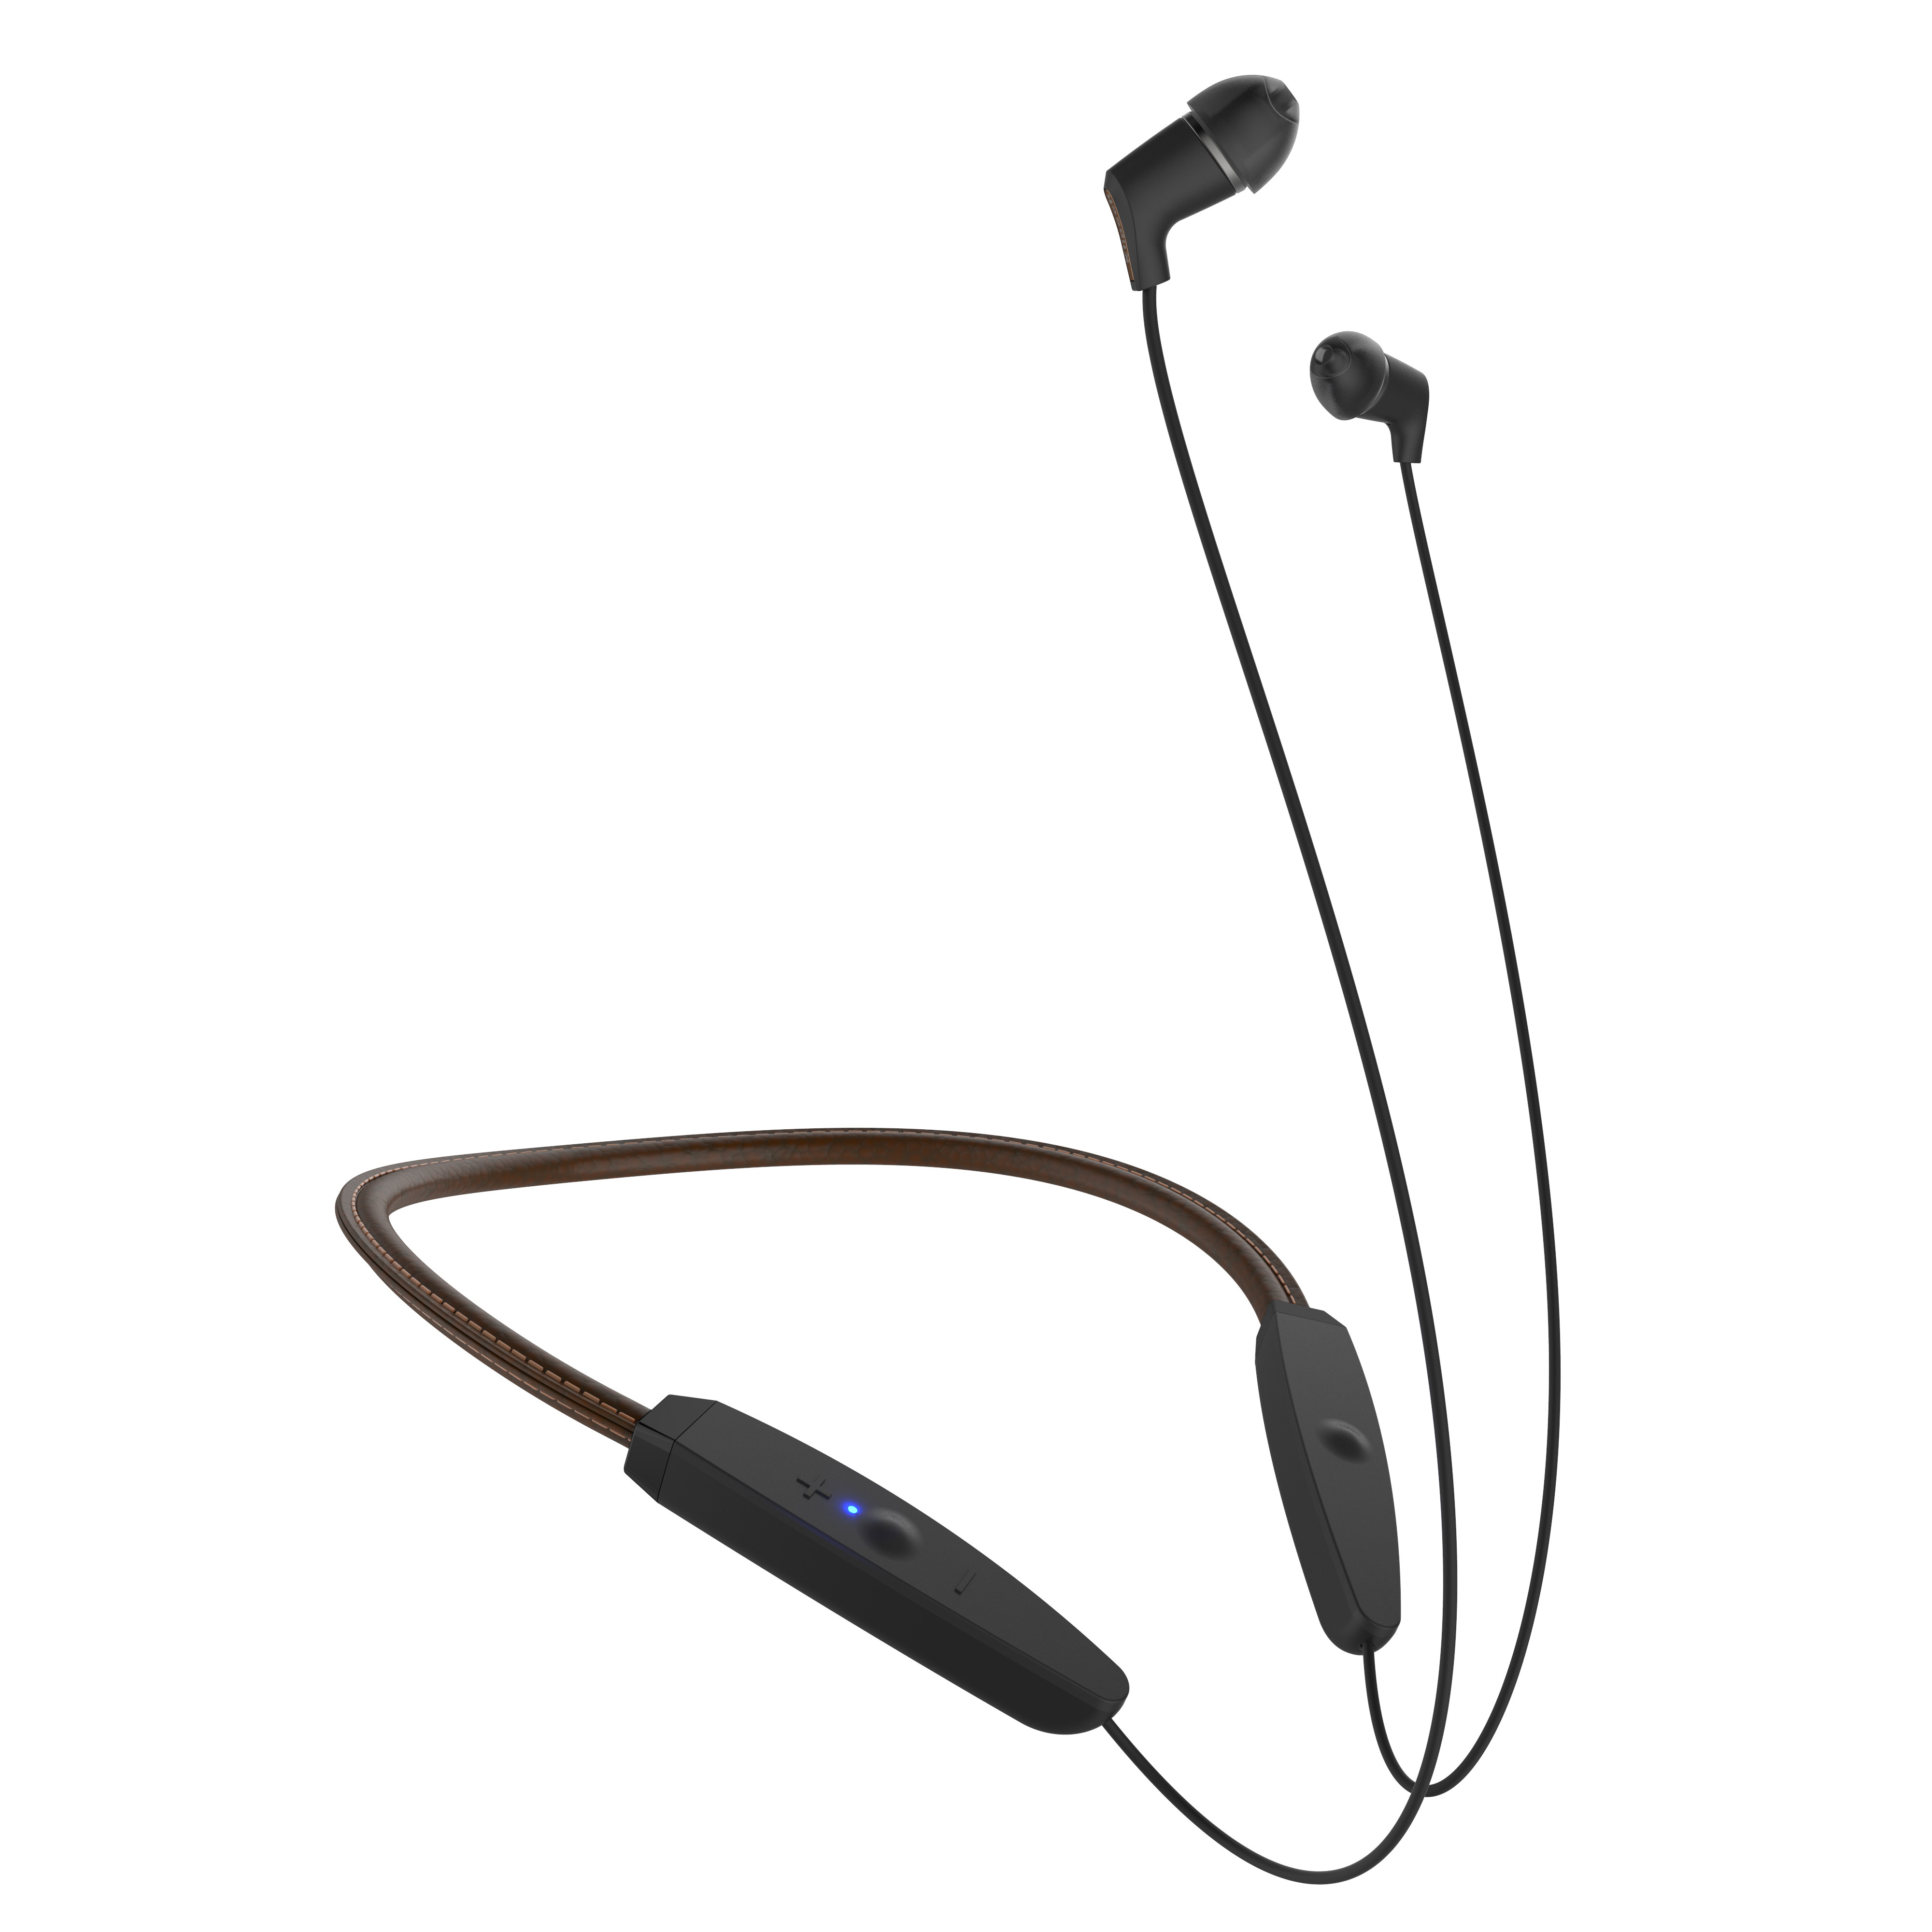 Klipsch earbuds mic - bluetooth earbuds with mic neckband